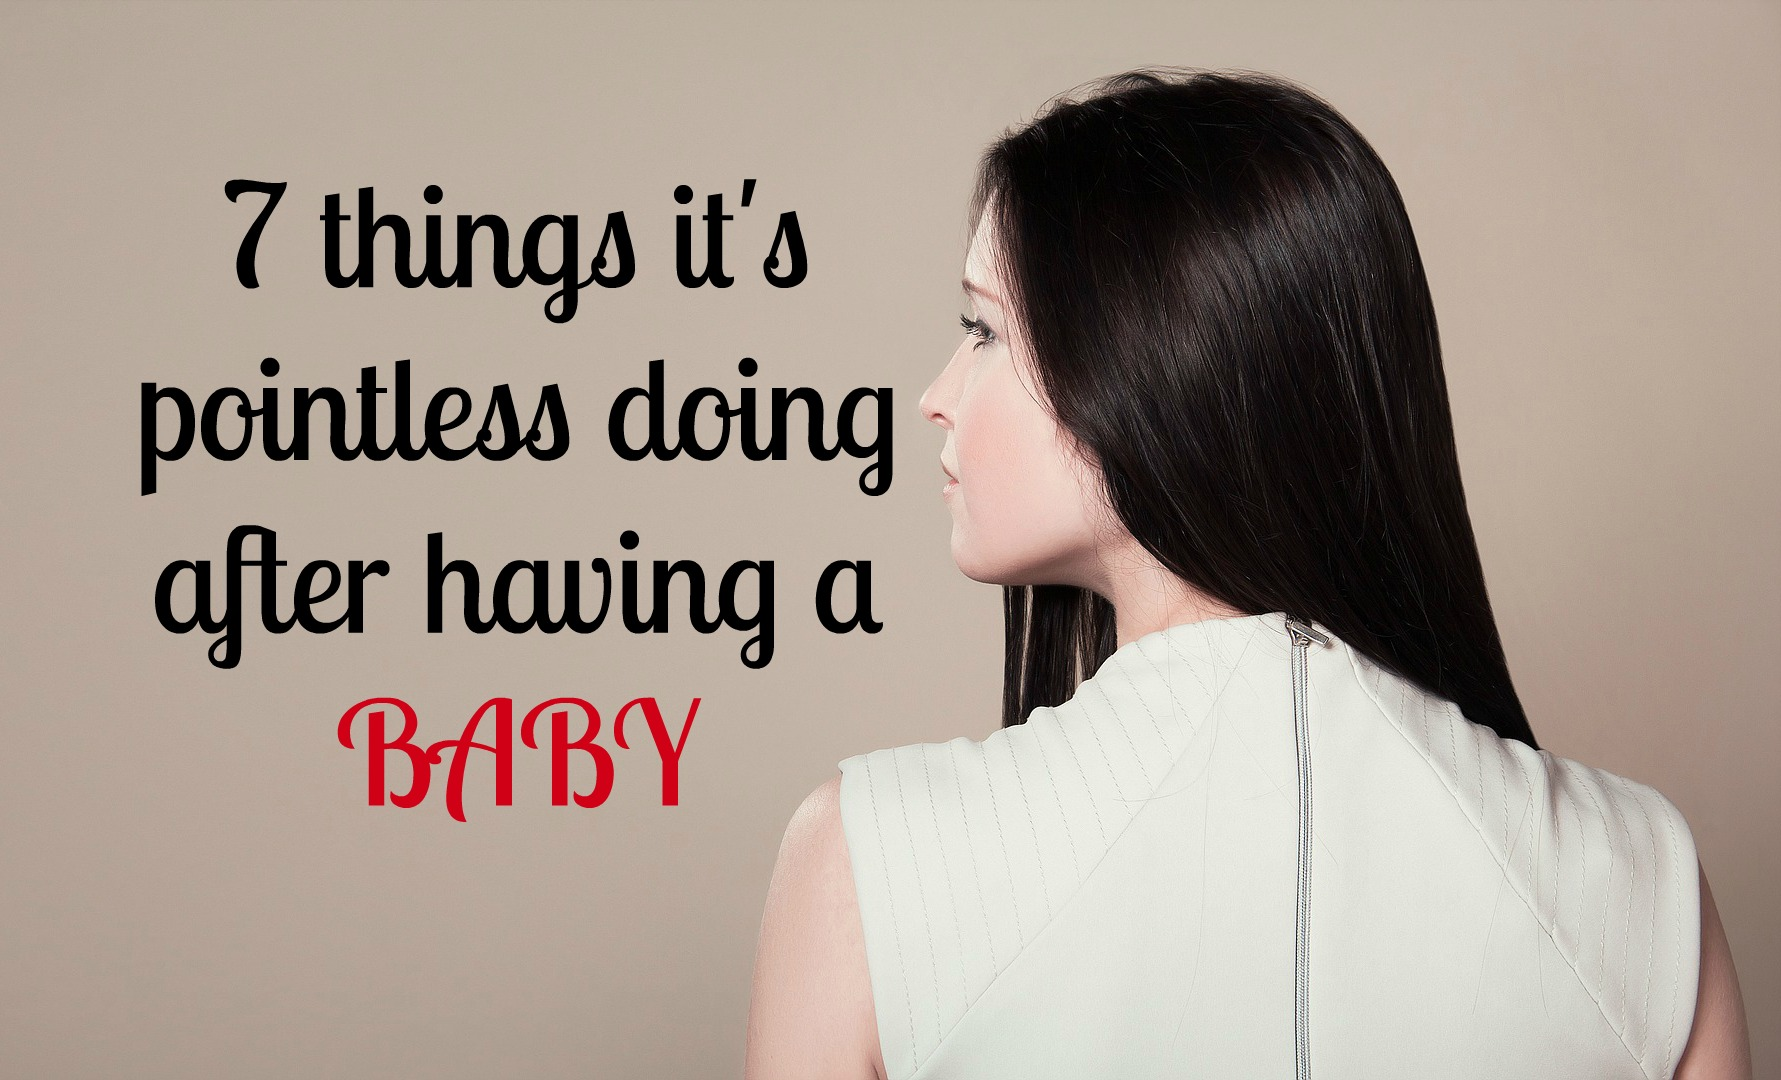 7 things it's pointless doing after having a baby